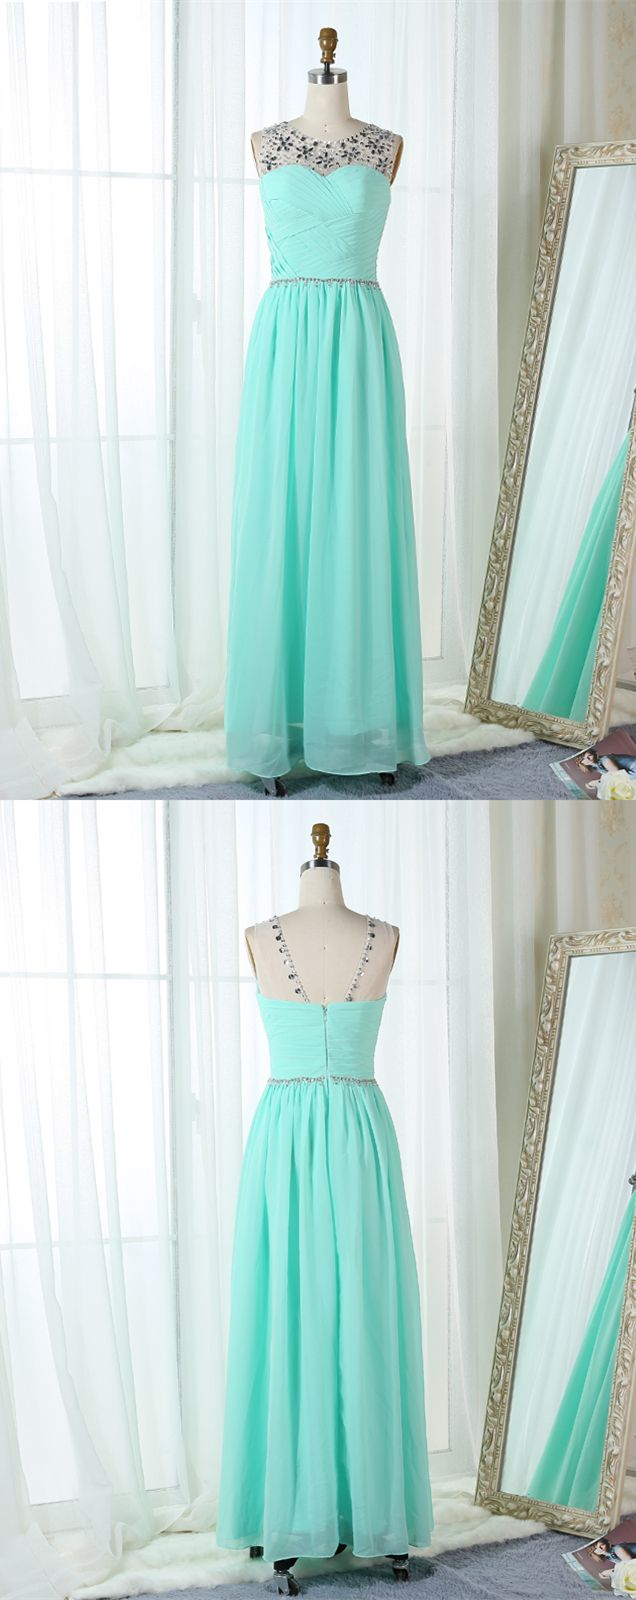 mint long prom dresses, long bridesmaid dress with beading, cheap prom dress under 50